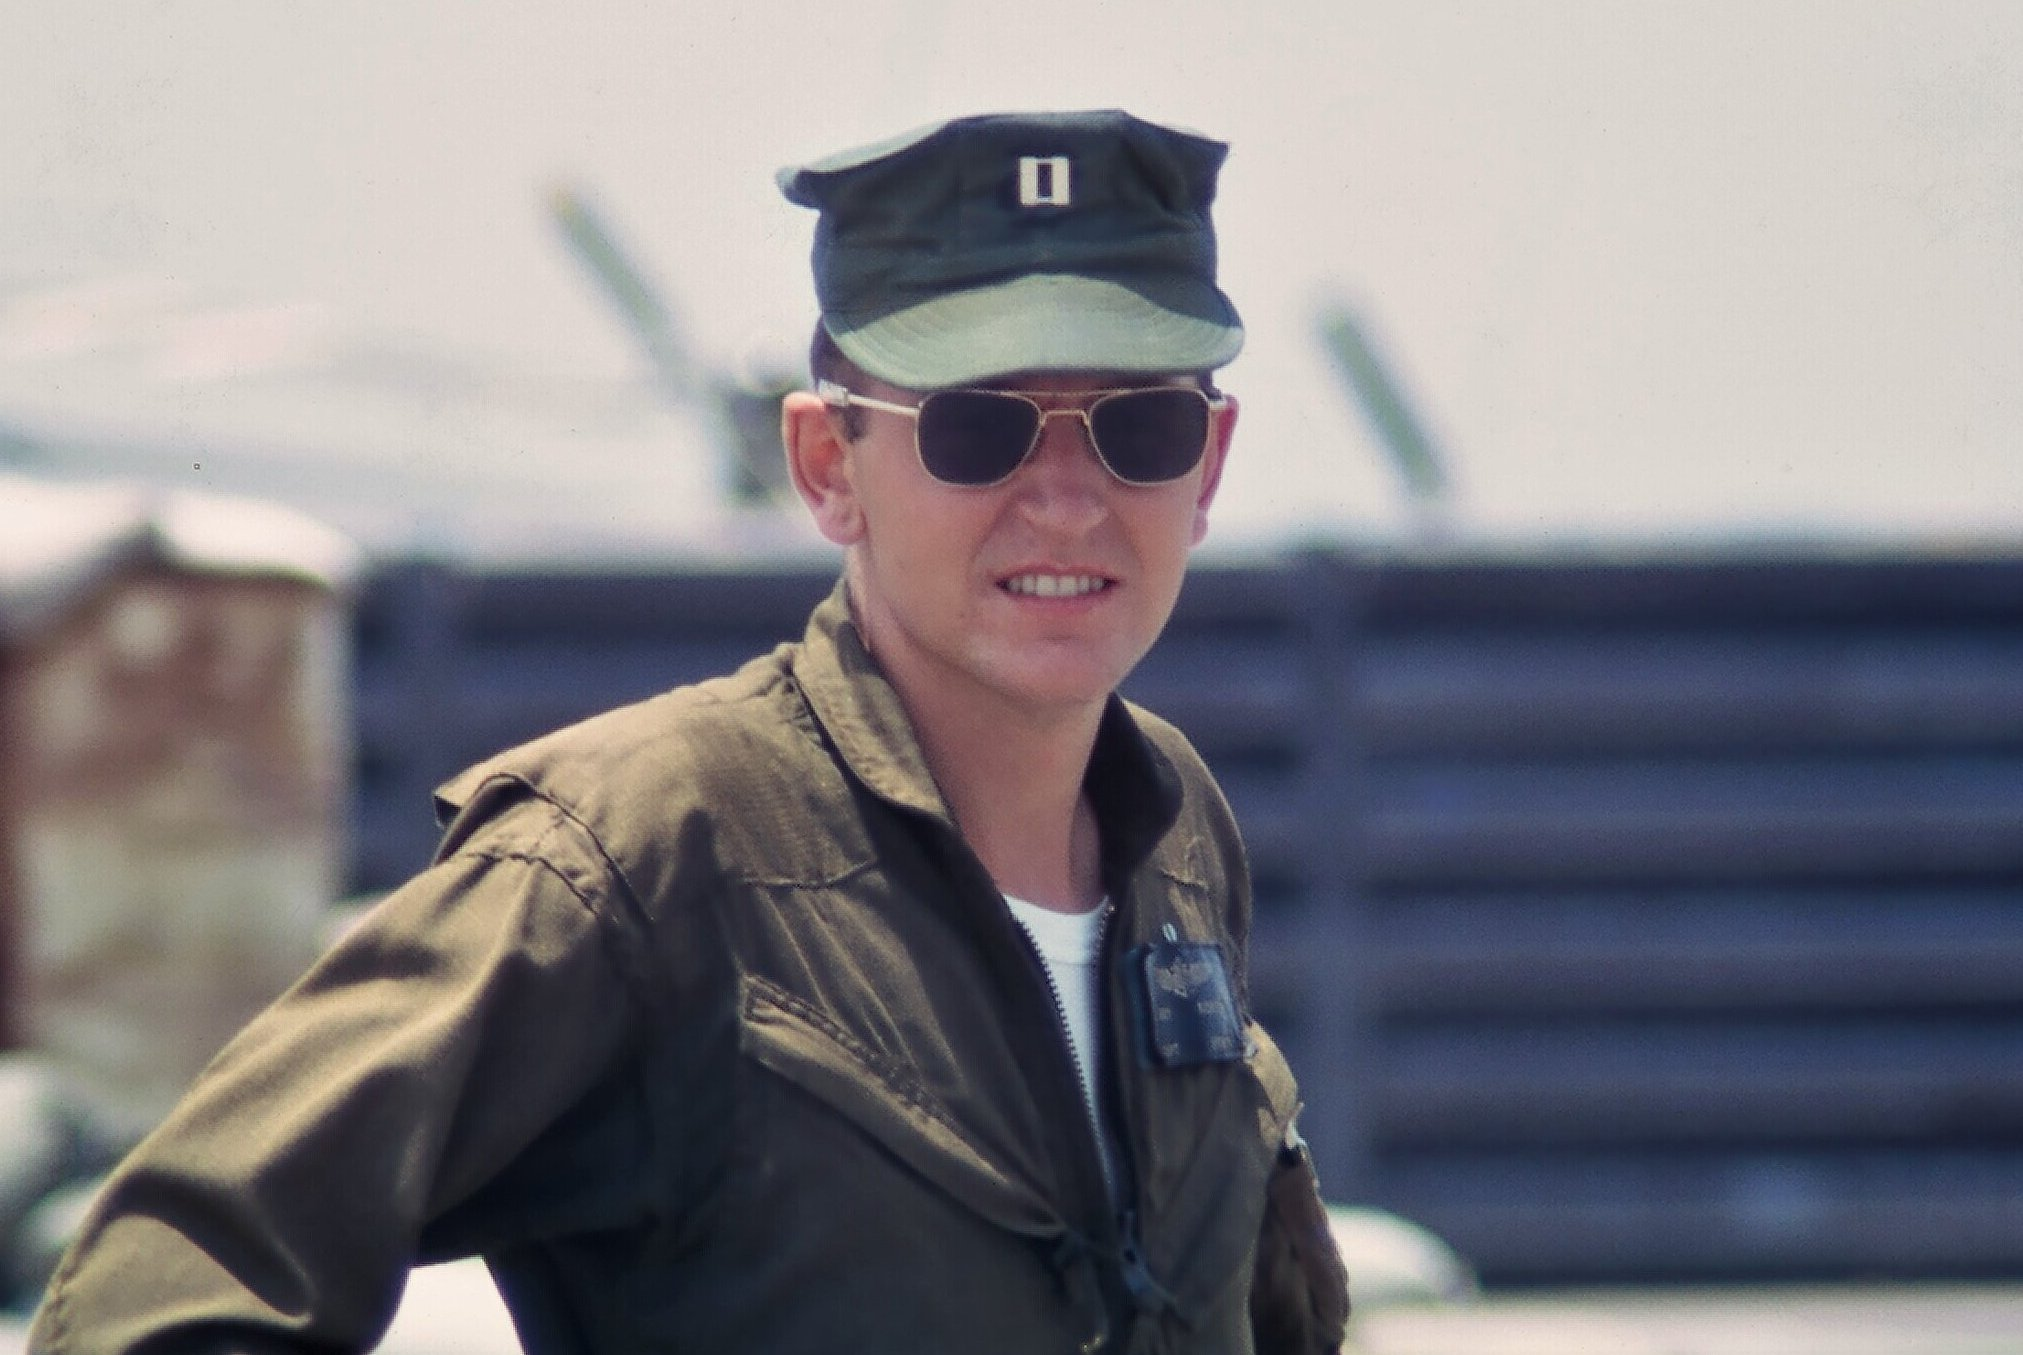 A young soldier wearing a cap, a flight jacket, and aviator sunglasses.